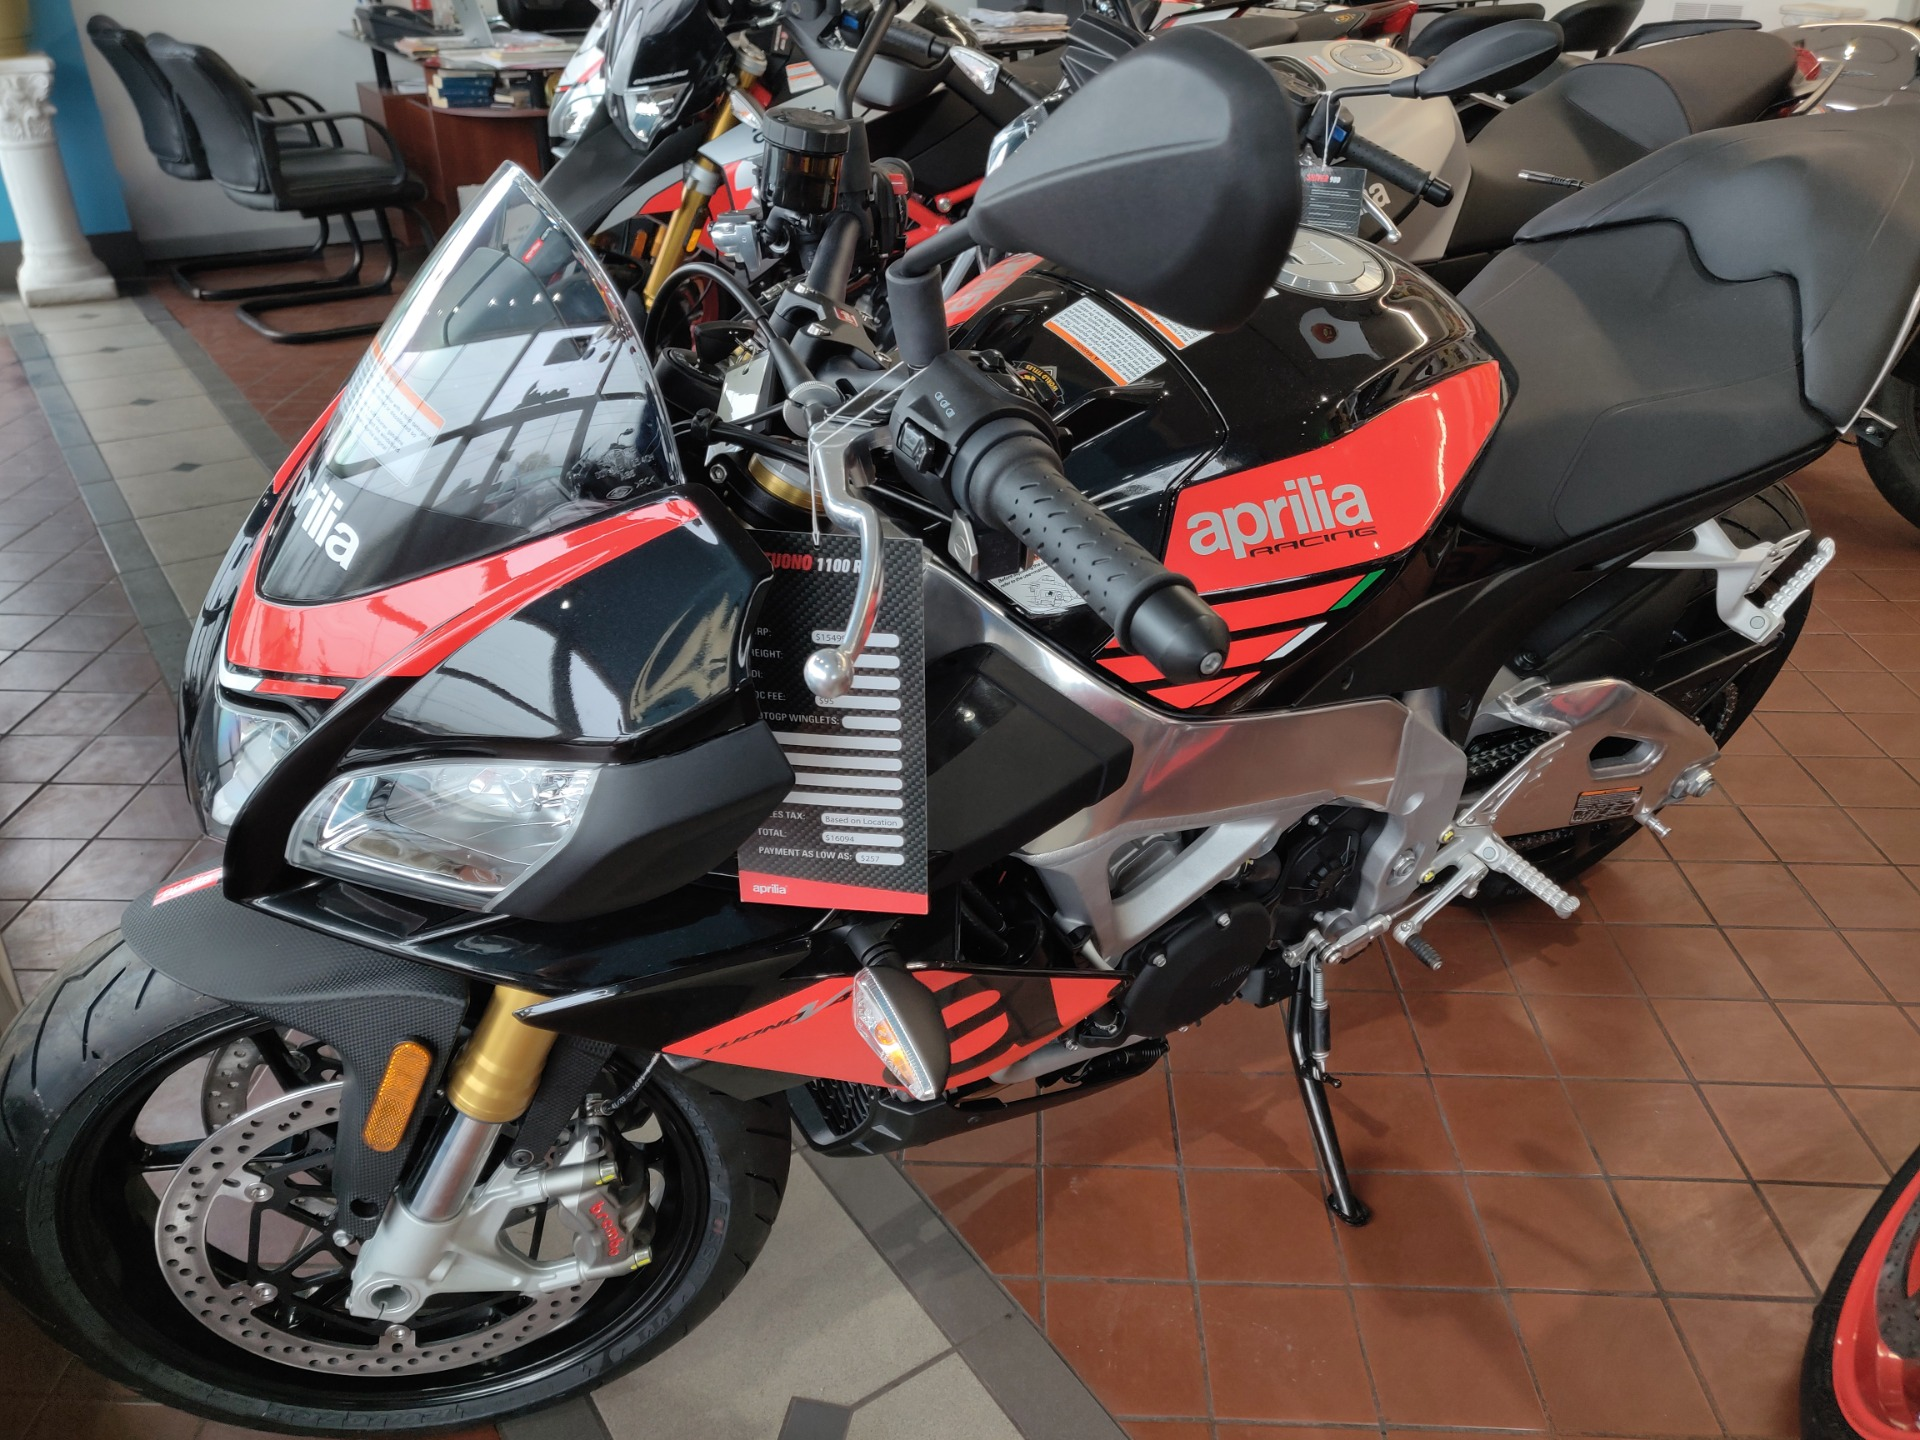 2018 Aprilia Tuono V4 1100 Rr Stock 5047 For Sale Near Brookfield Wi Wi Aprilia Dealer